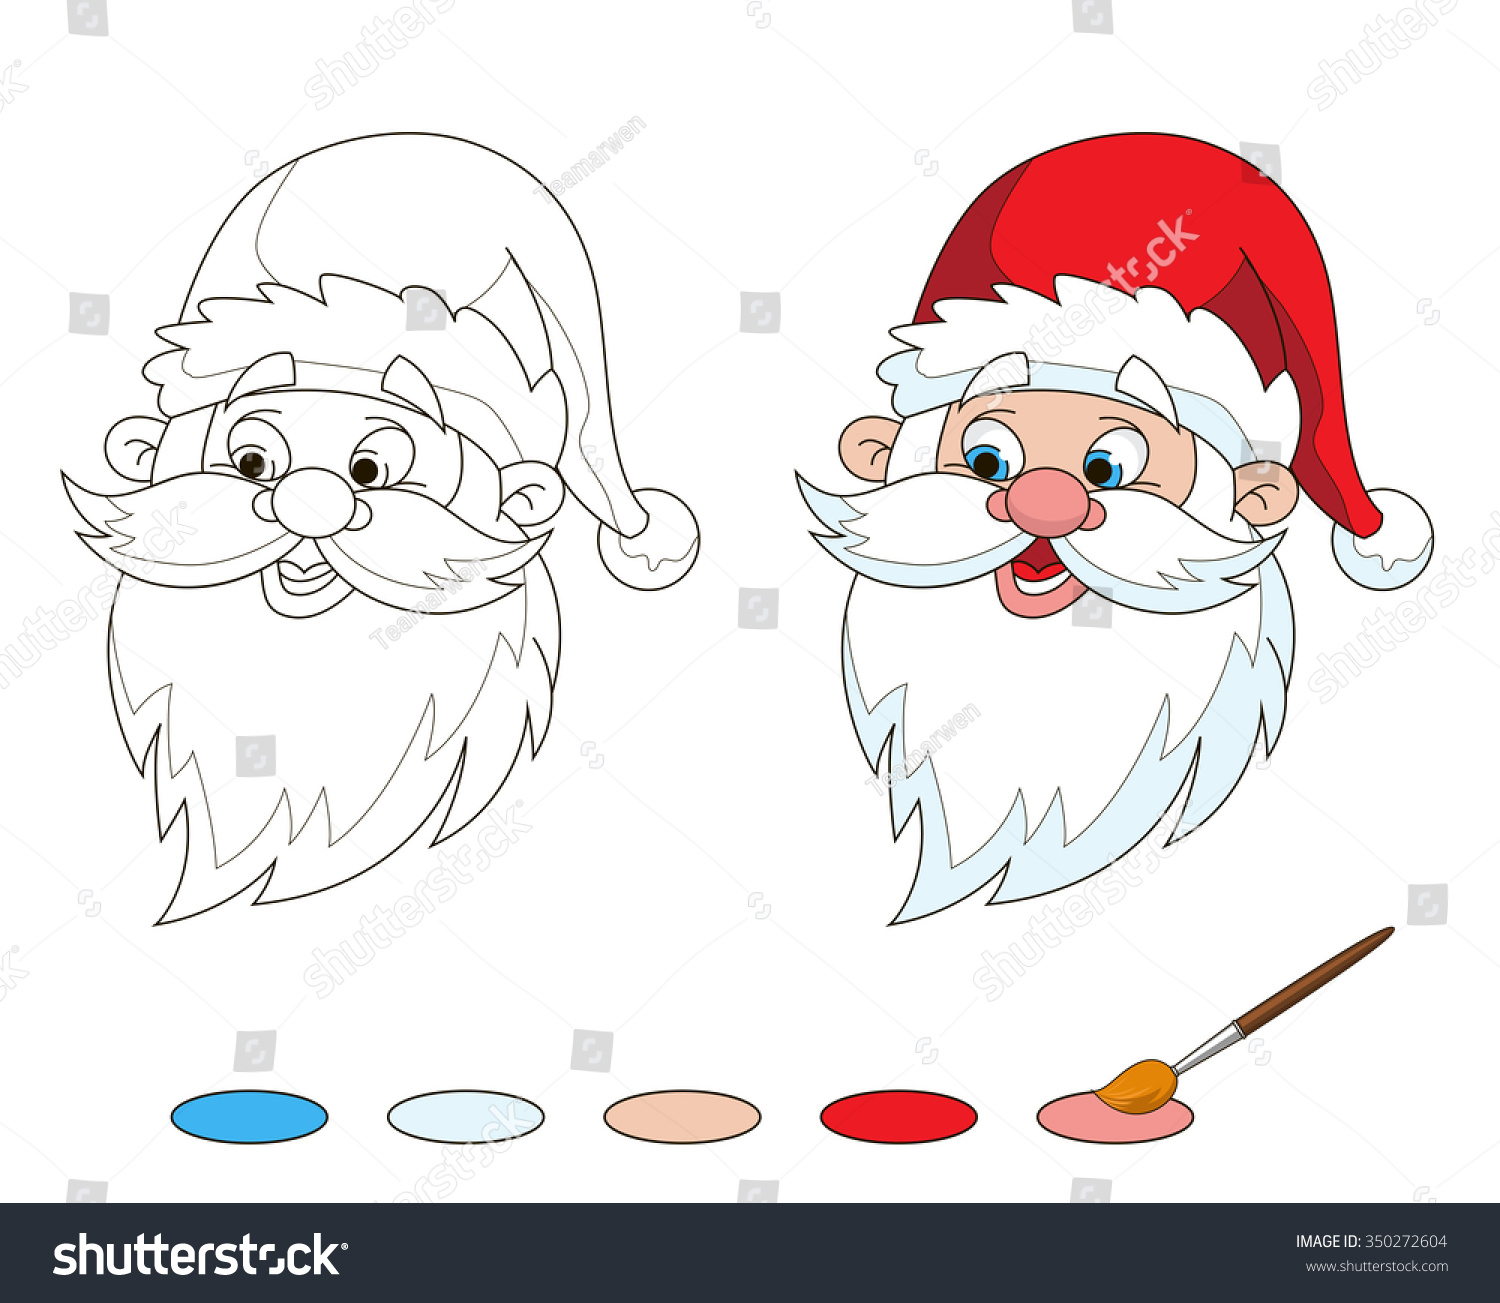 Santa Head Coloring Page With Santas Stock Vector Royalty Free 350272604